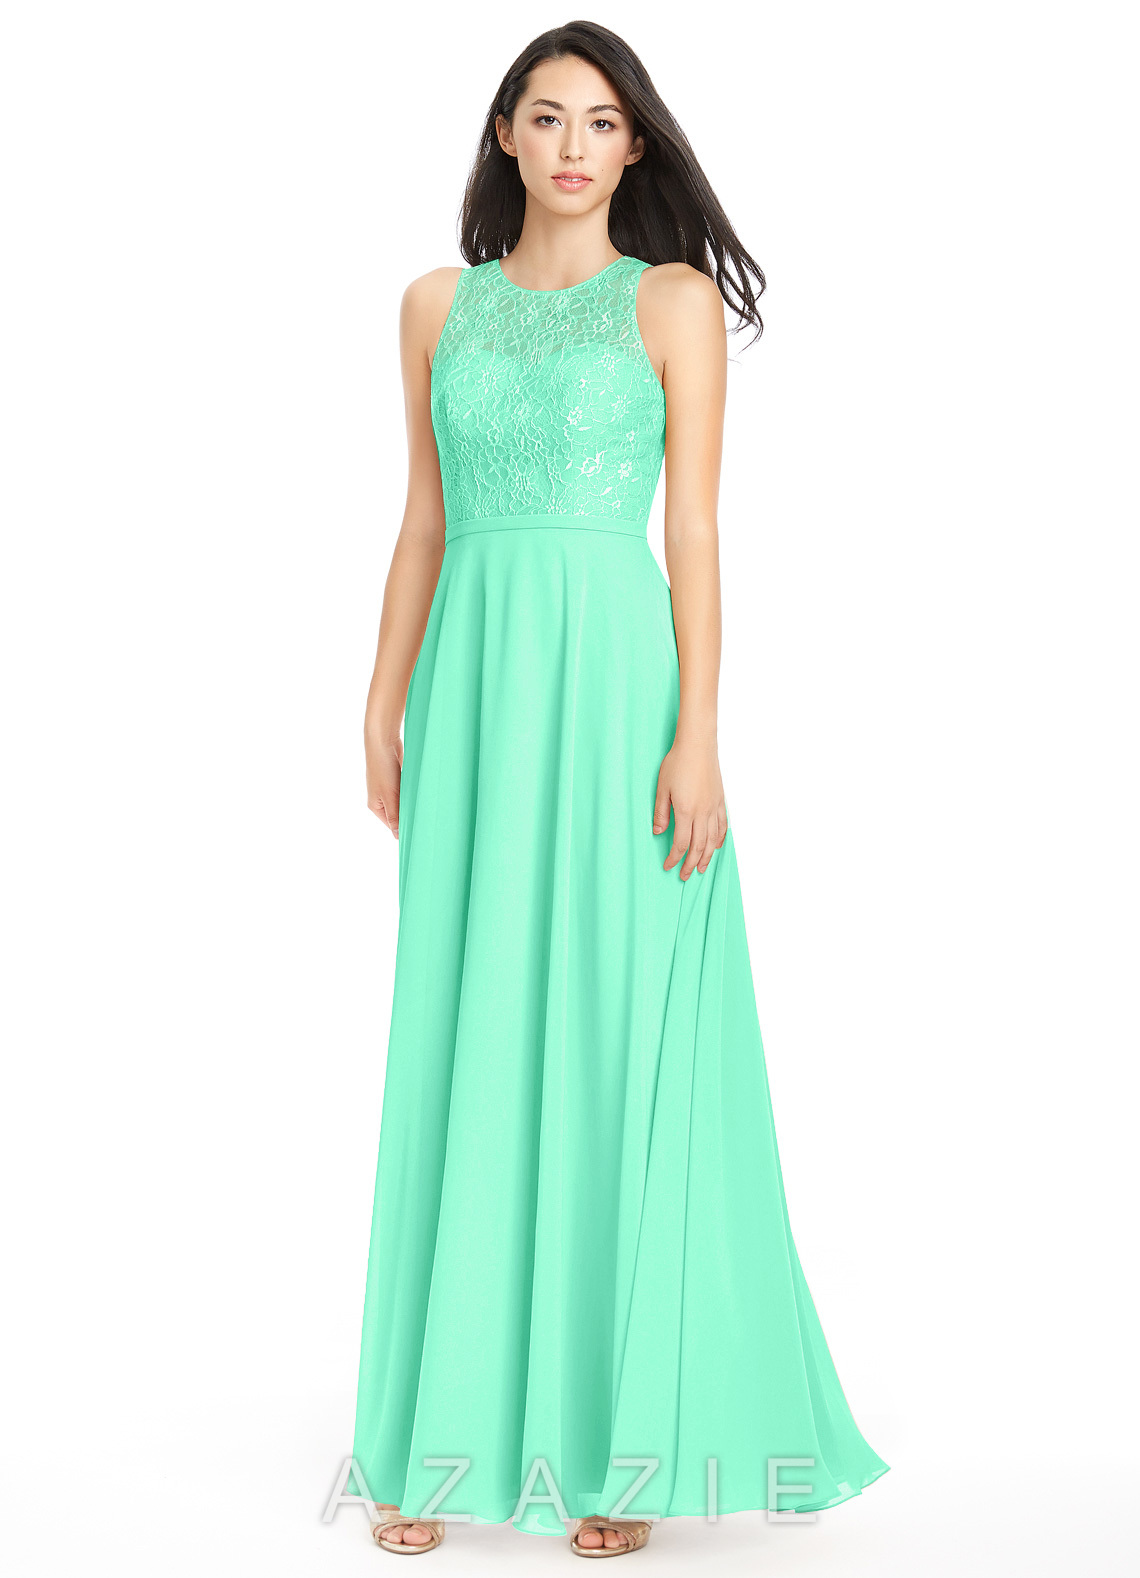 Azazie frederica bridesmaid dress azazie color turquoise ombrellifo Image collections